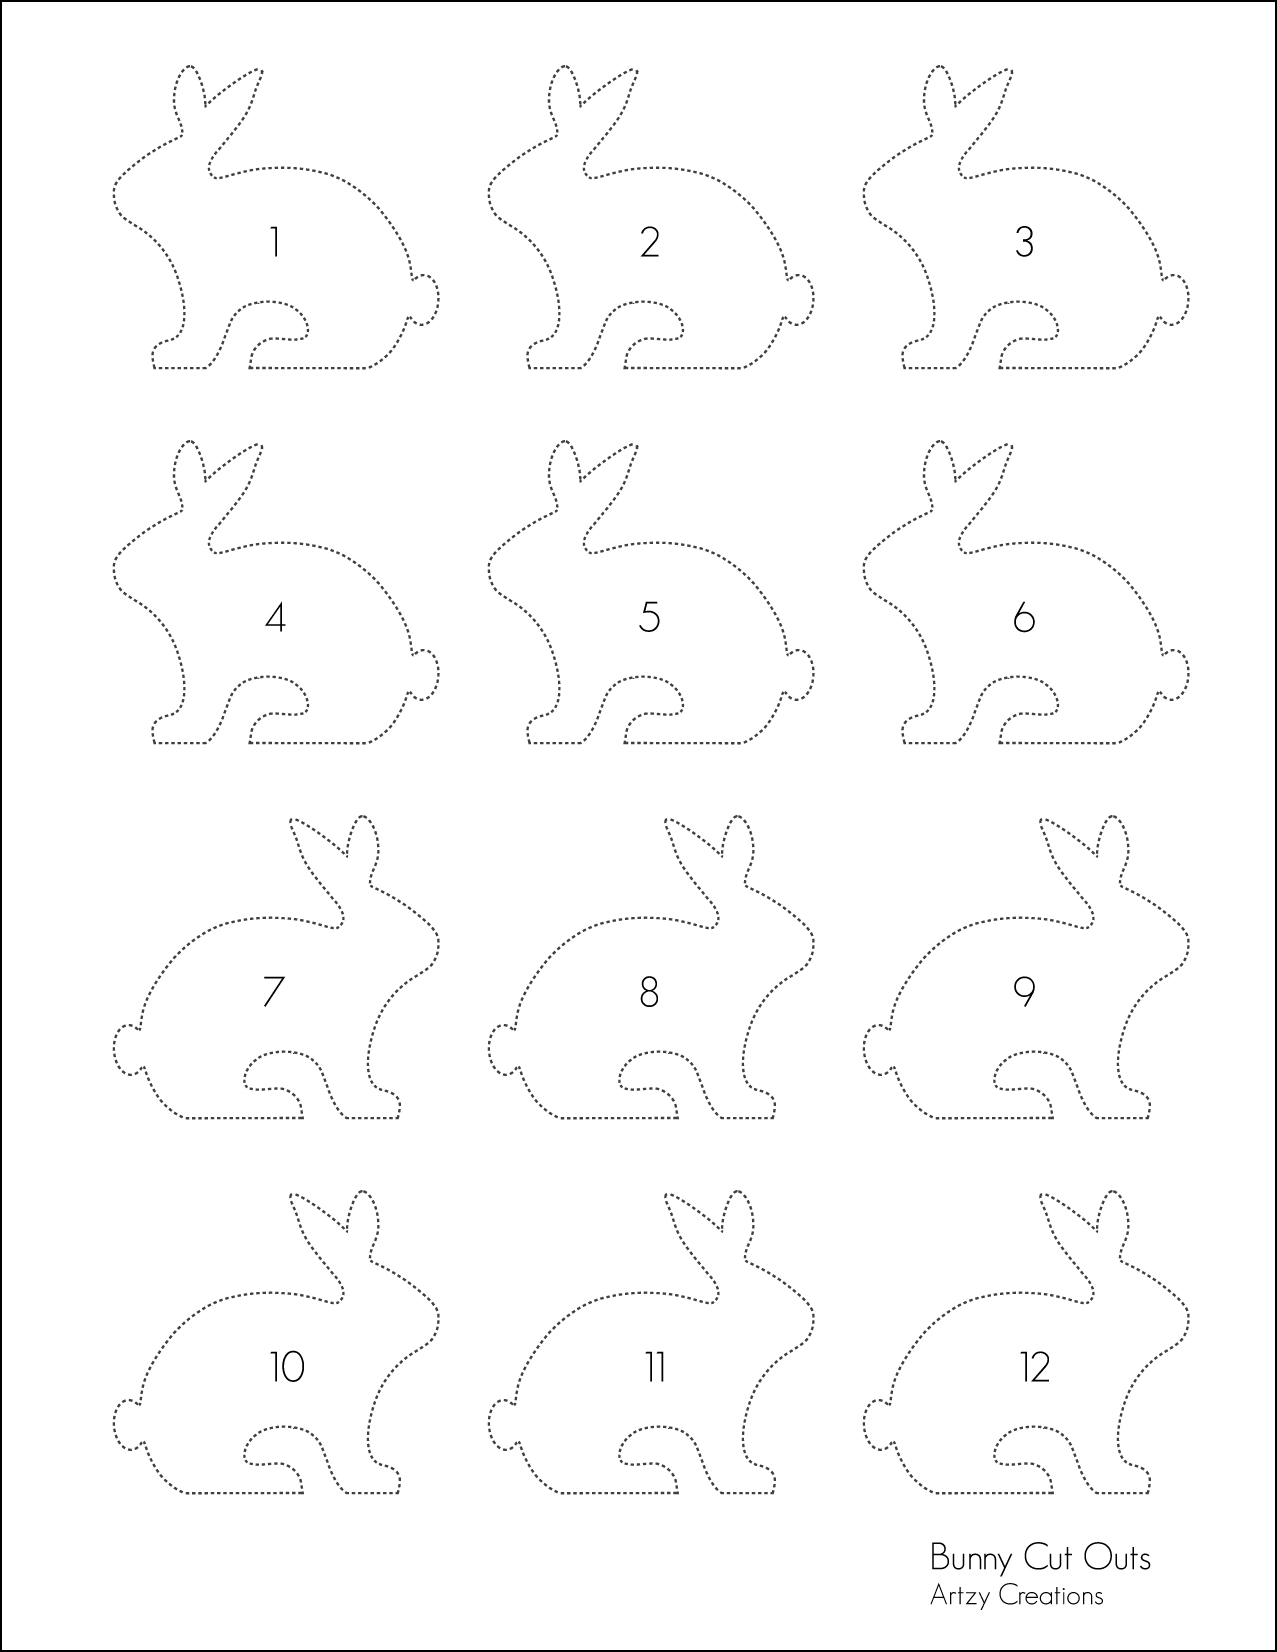 Bunny mason gift jars with printables artzycreations bunny cut out template for download here pronofoot35fo Images